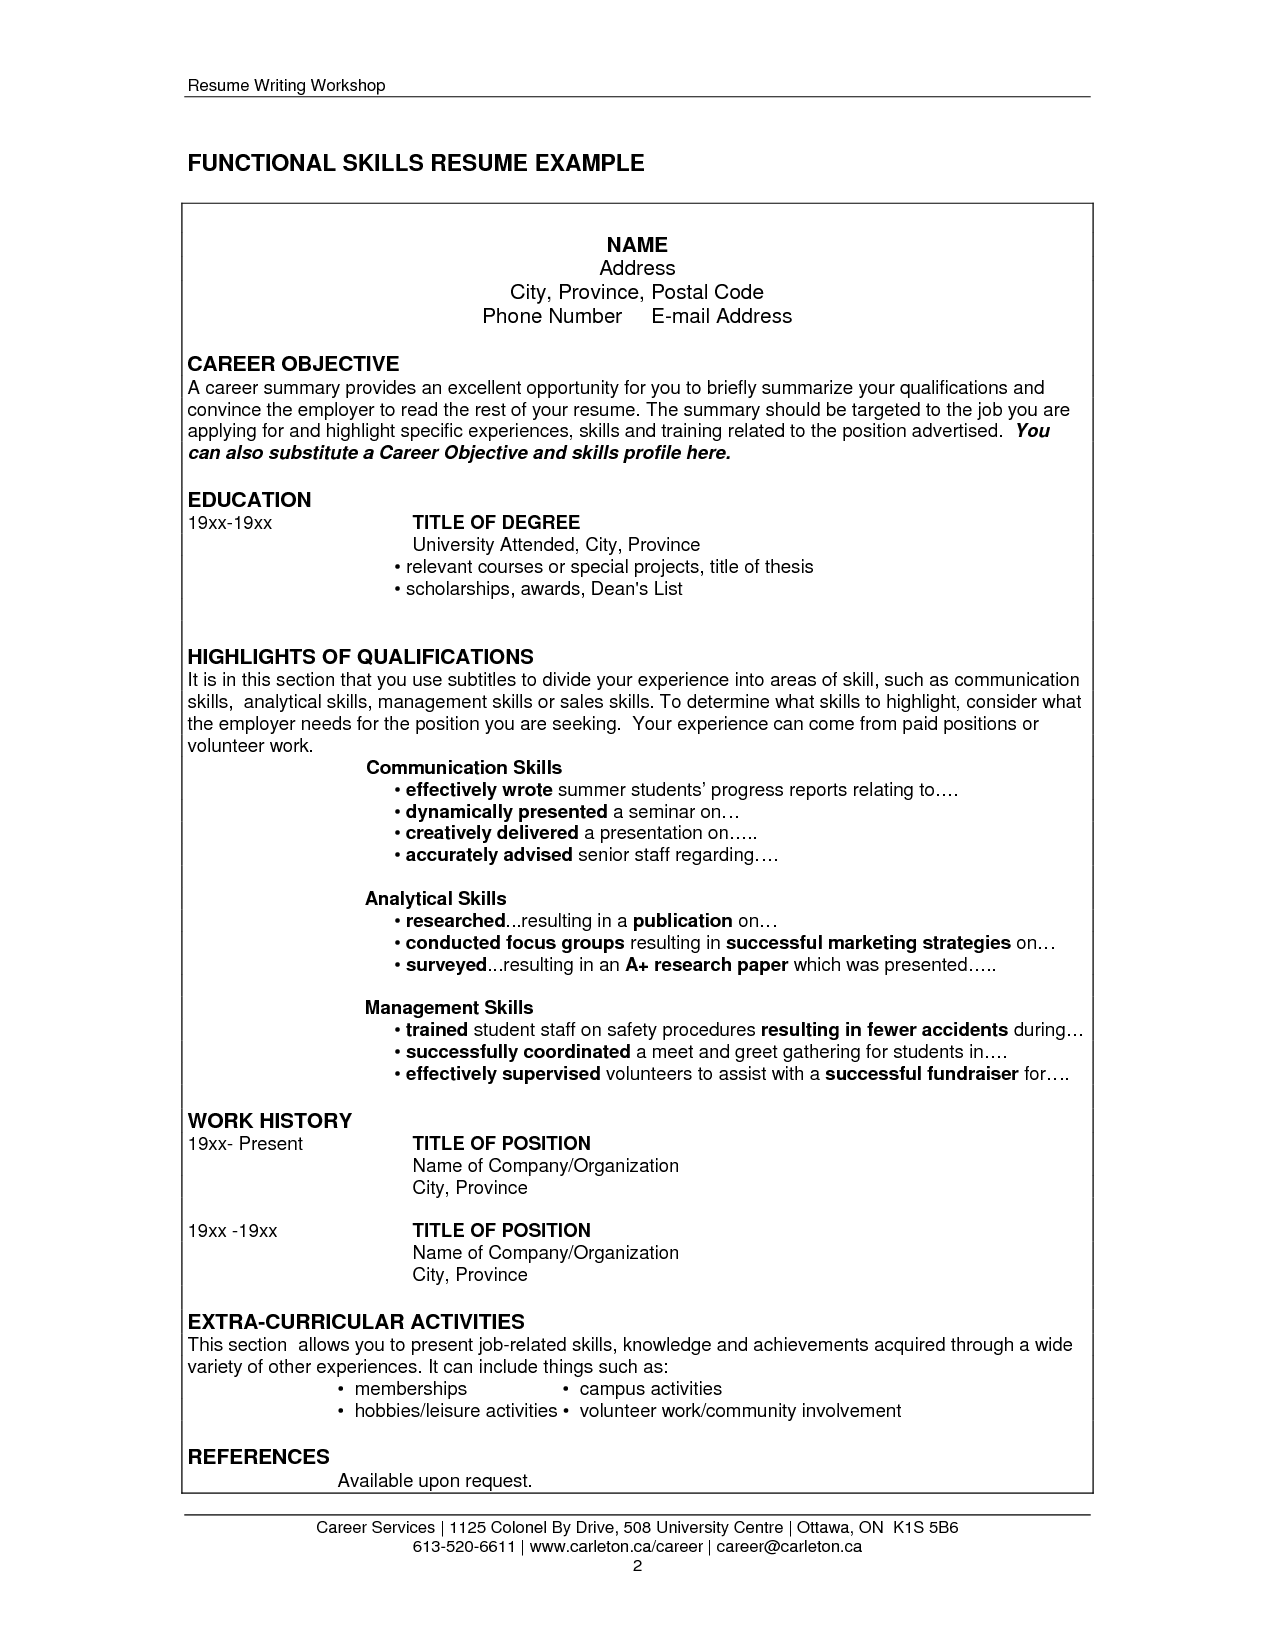 Examples Of Skills On A Resume Job Resume Communication Skills Http Resumecareer